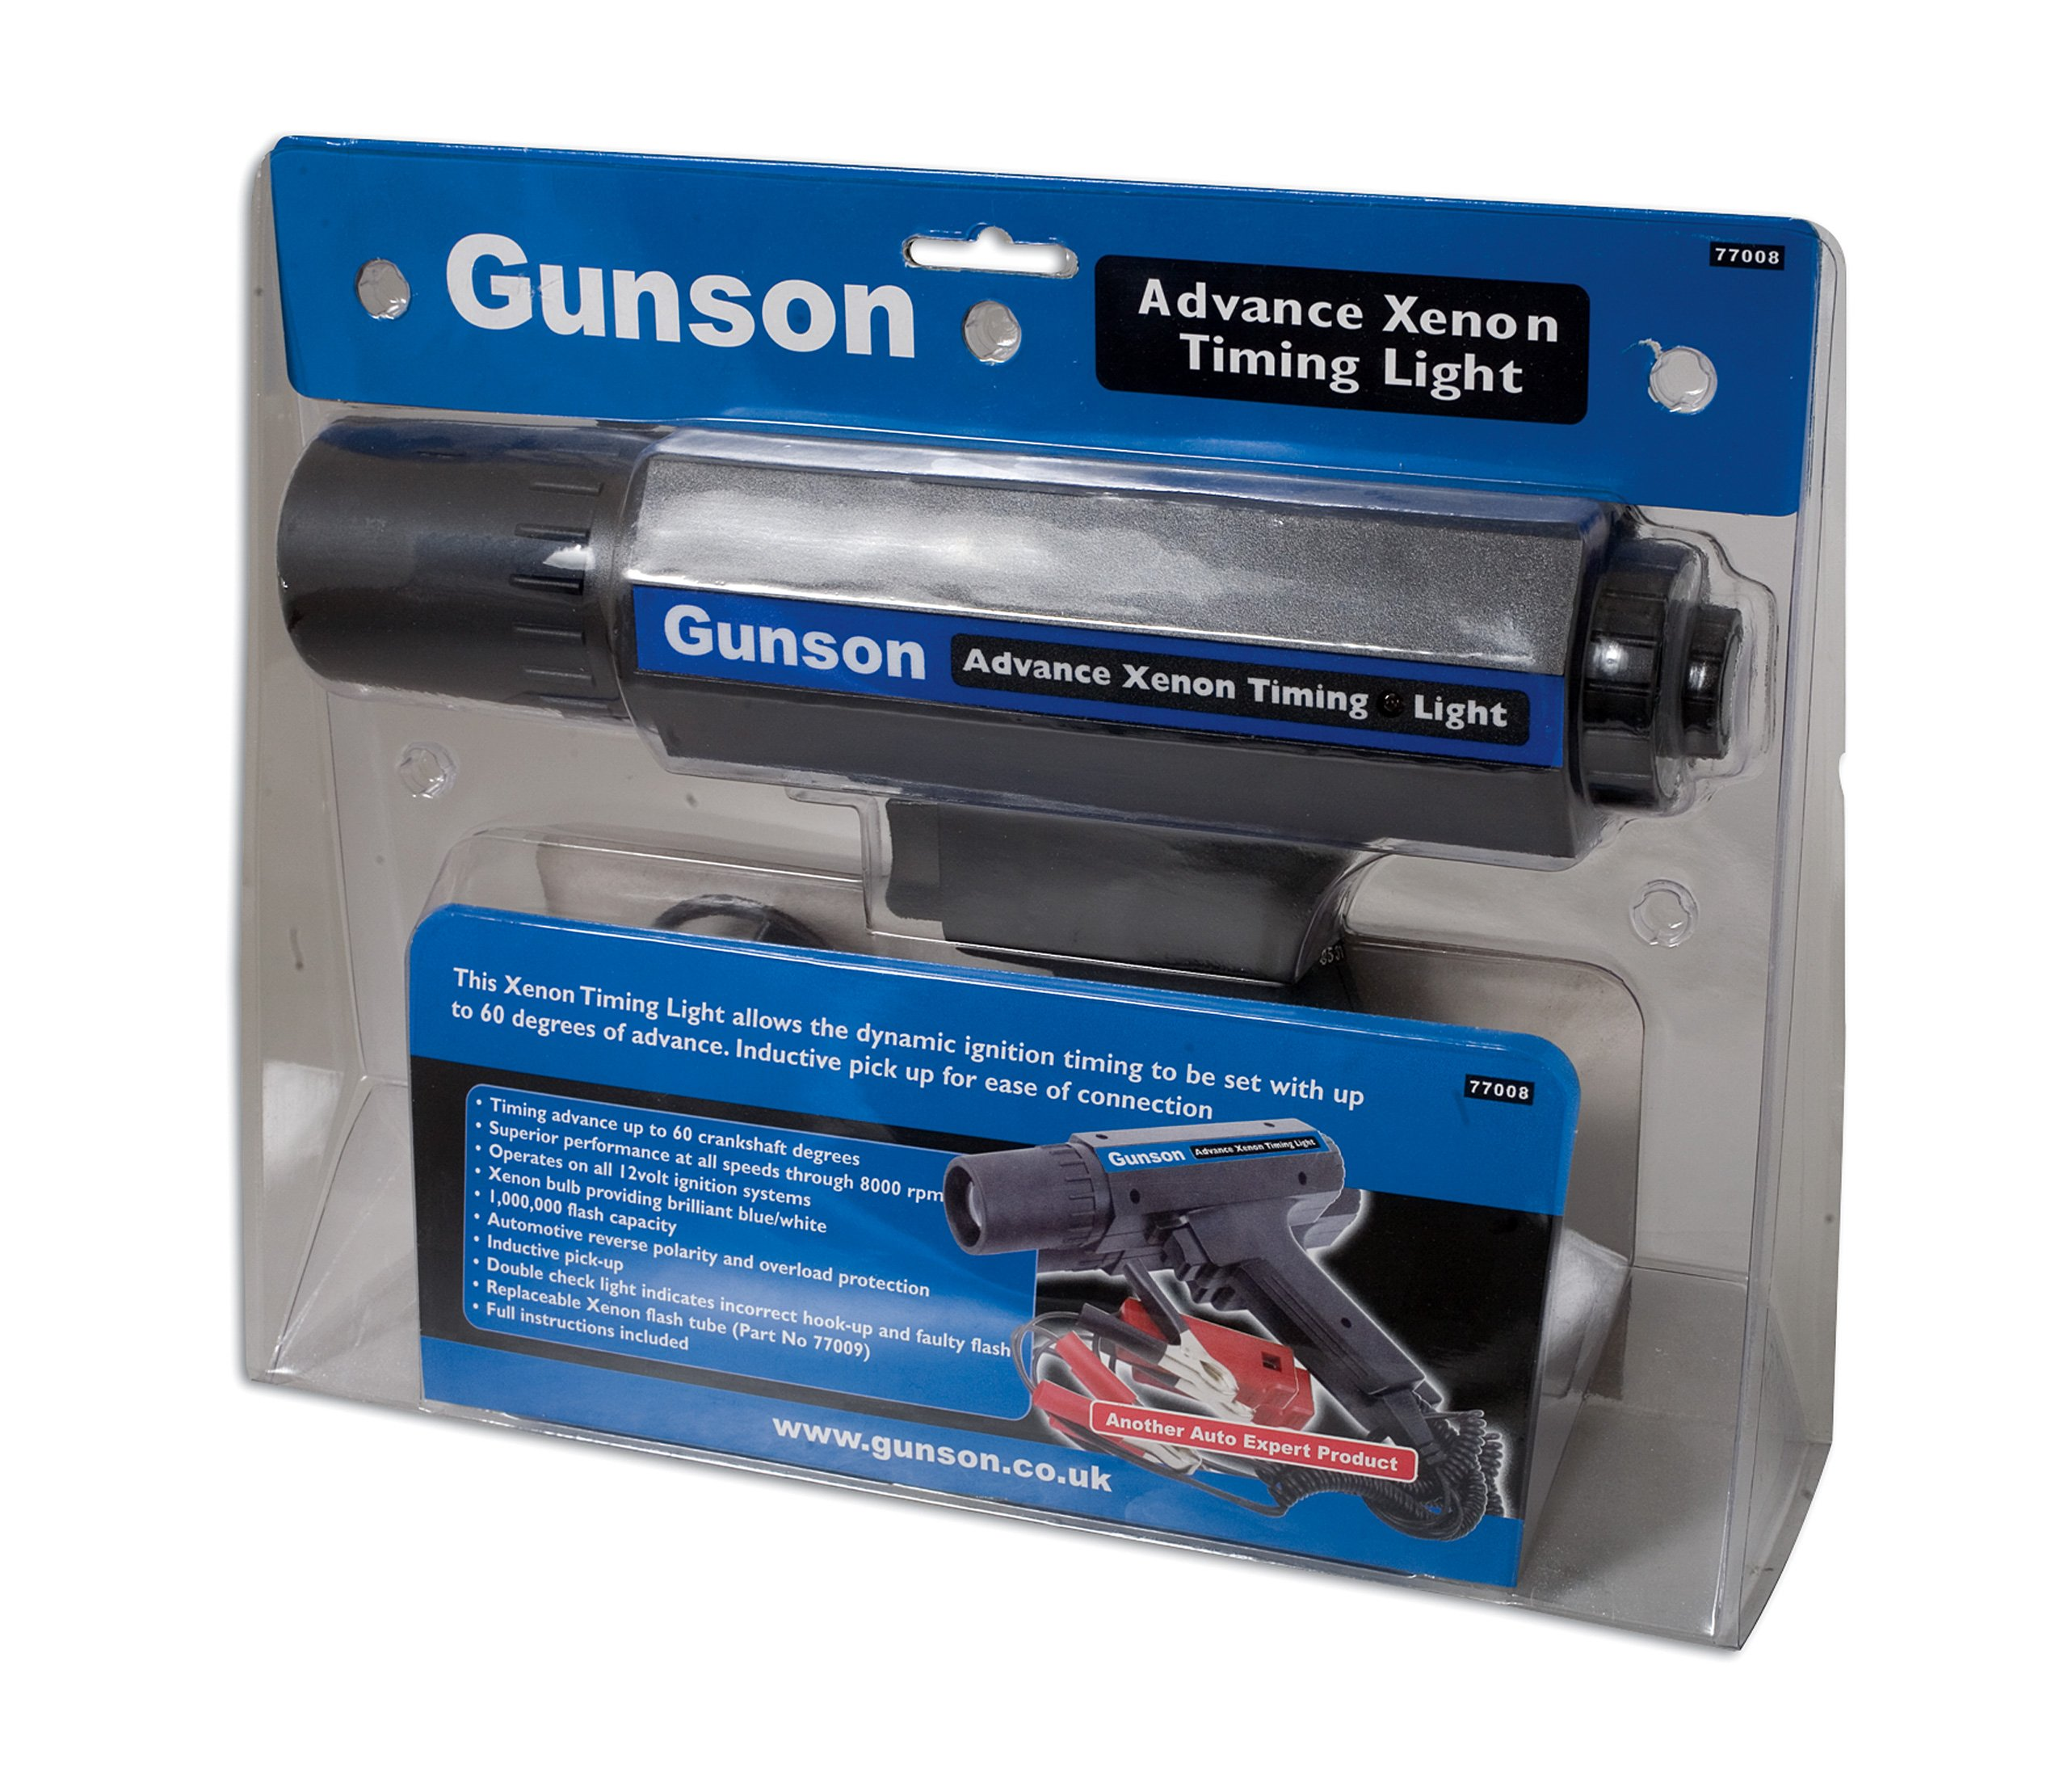 Gunson - 77008 Timing Light With Advance Feature by Gunson (Image #2)